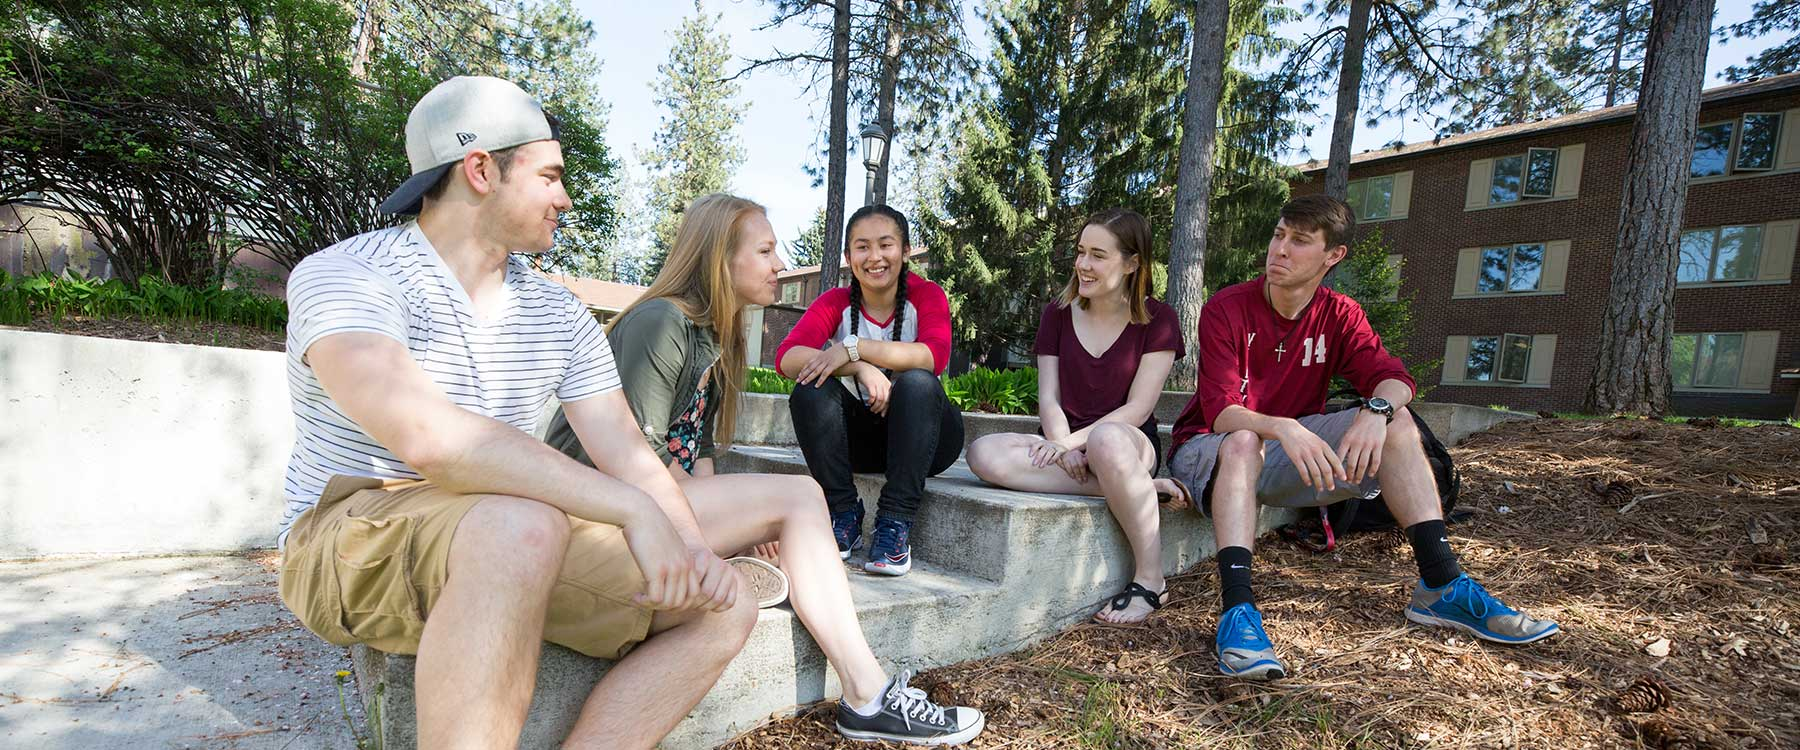 A group of students sit on concrete steps somewhere on campus. They smile and talk together.